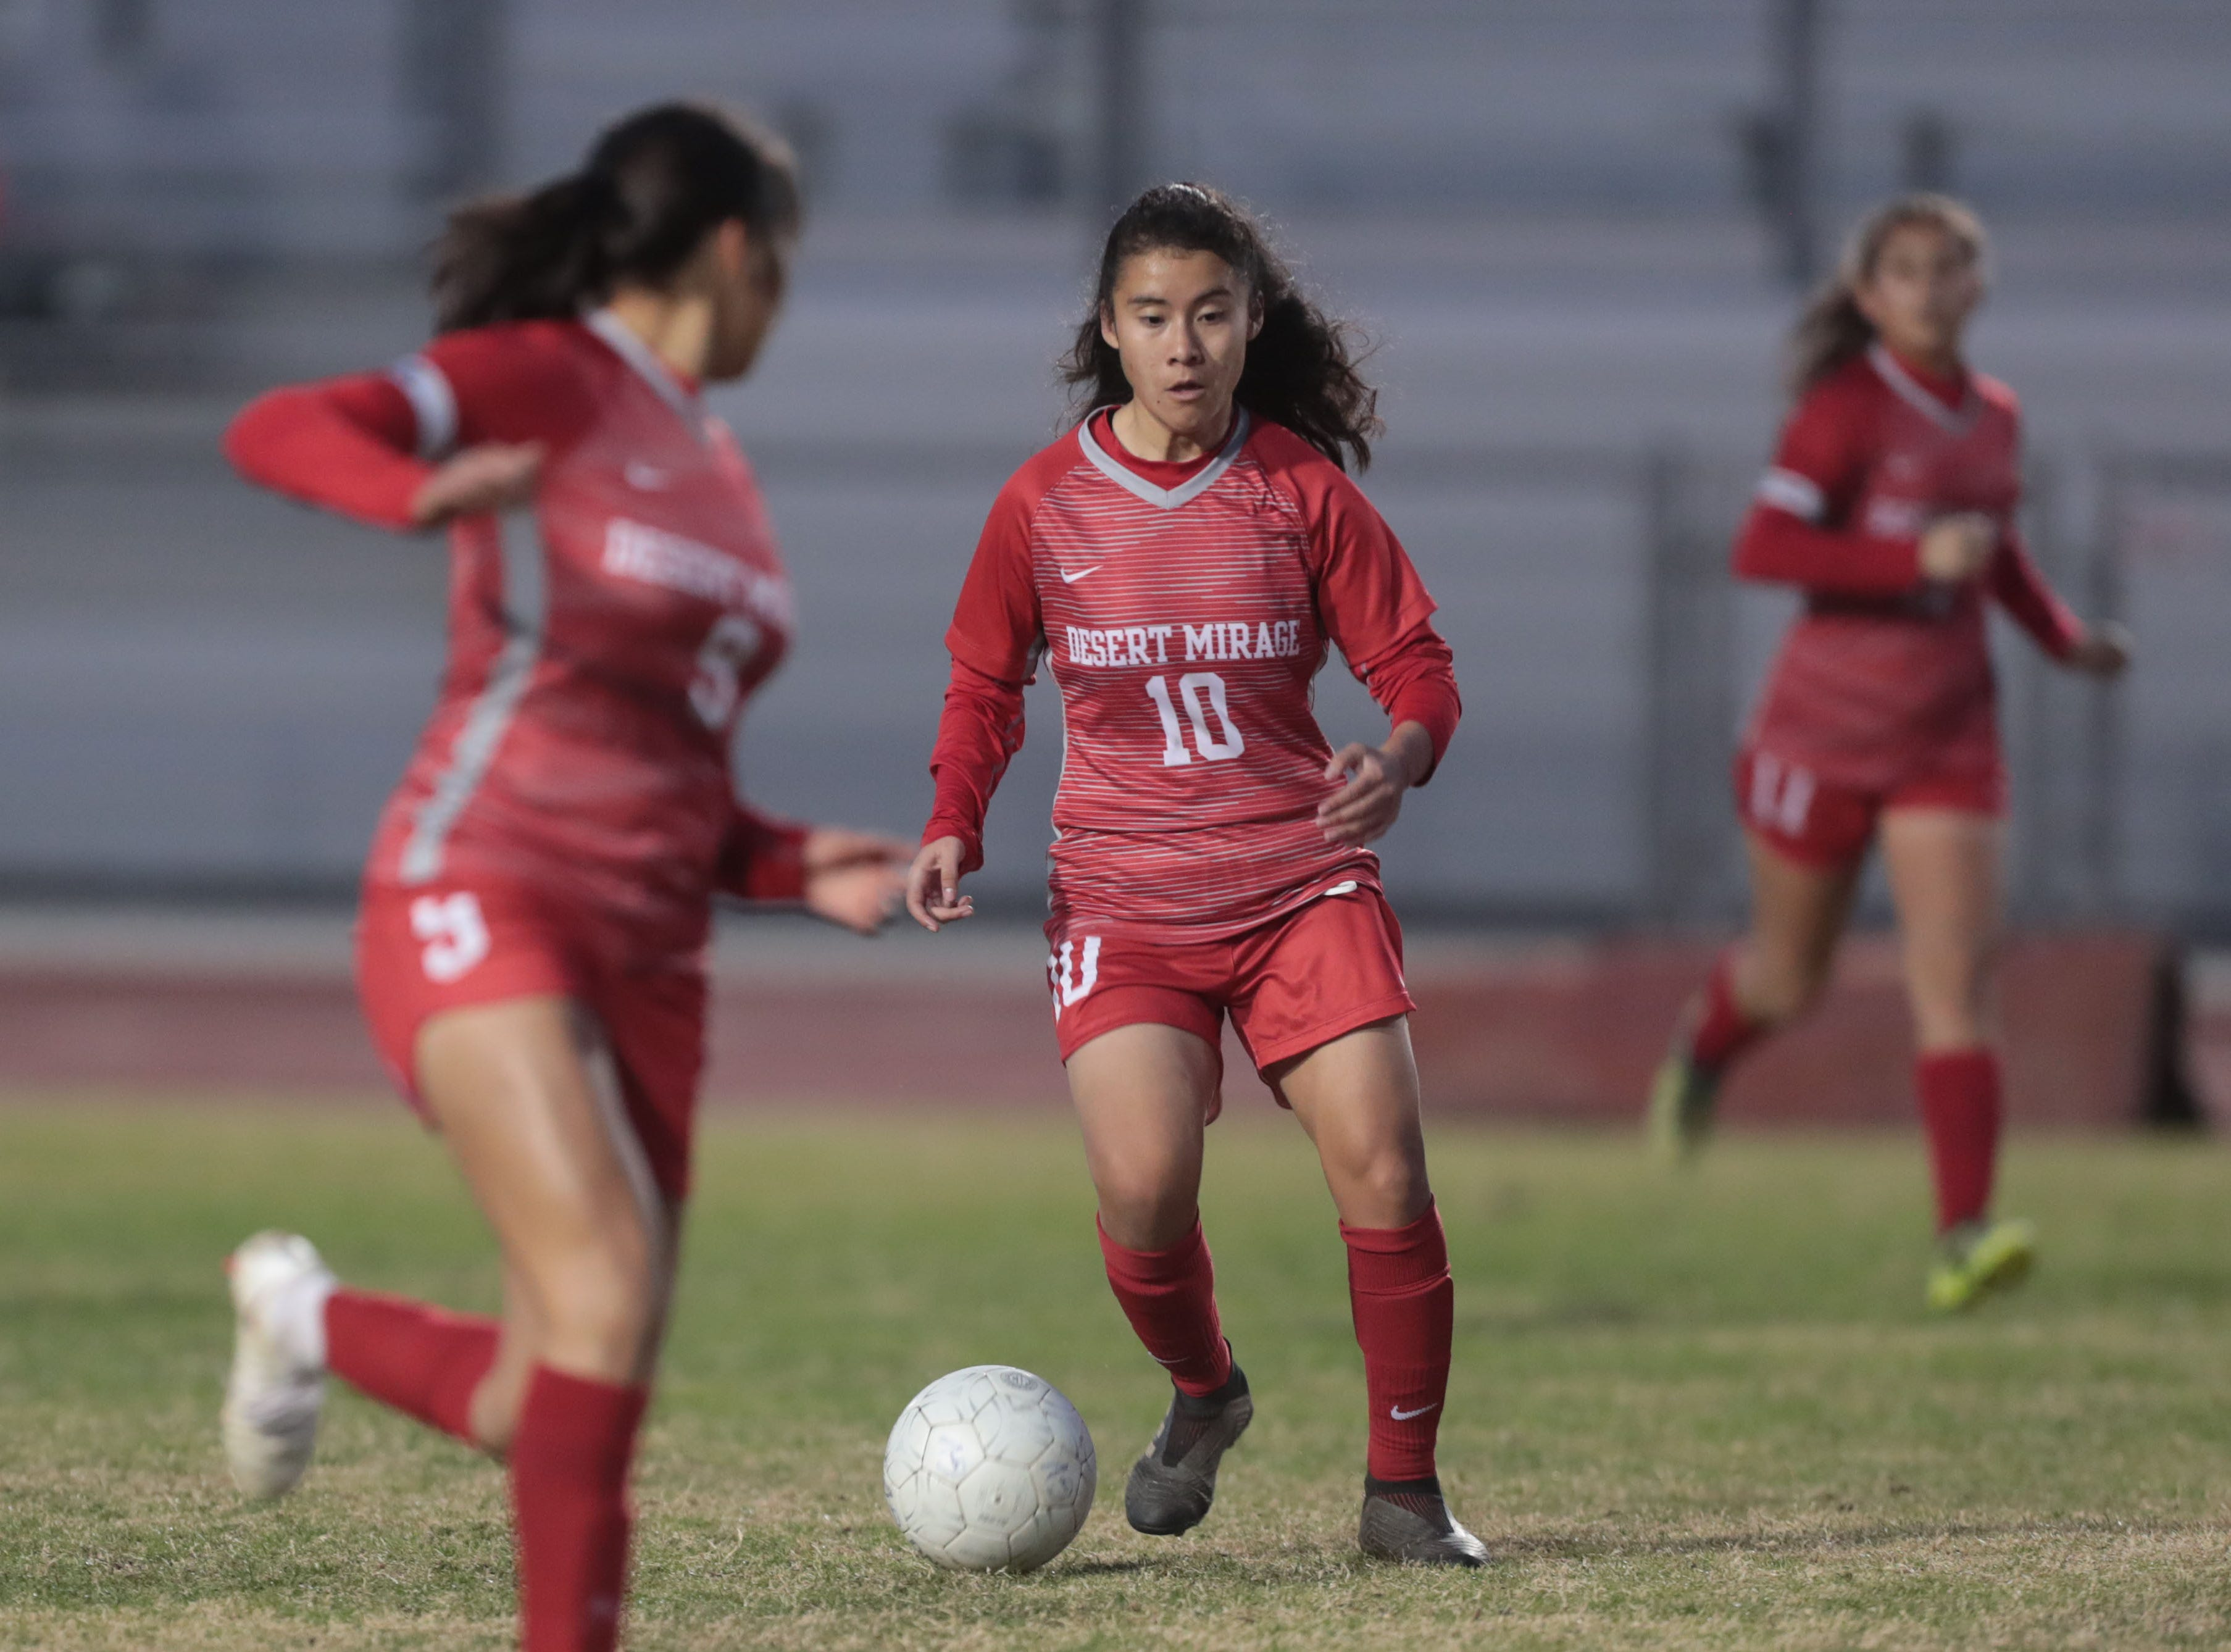 Rams' Yisel Ybarra moves the ball forward against the Lions on Tuesday, January 8, 2018 in Thermal.